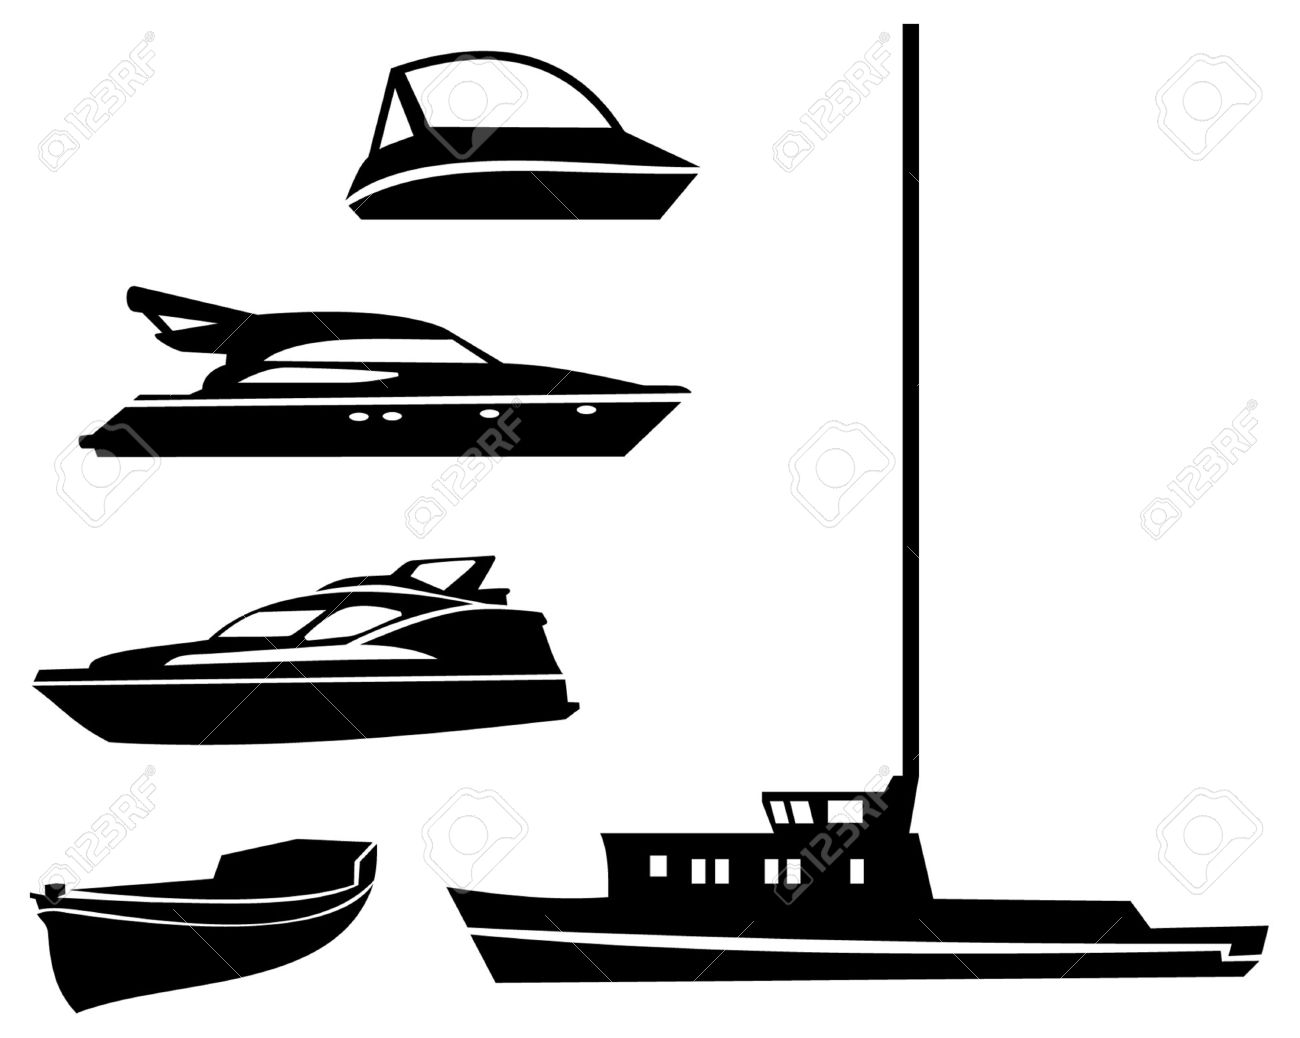 Sailboat Silhouette Clip Art At Getdrawings